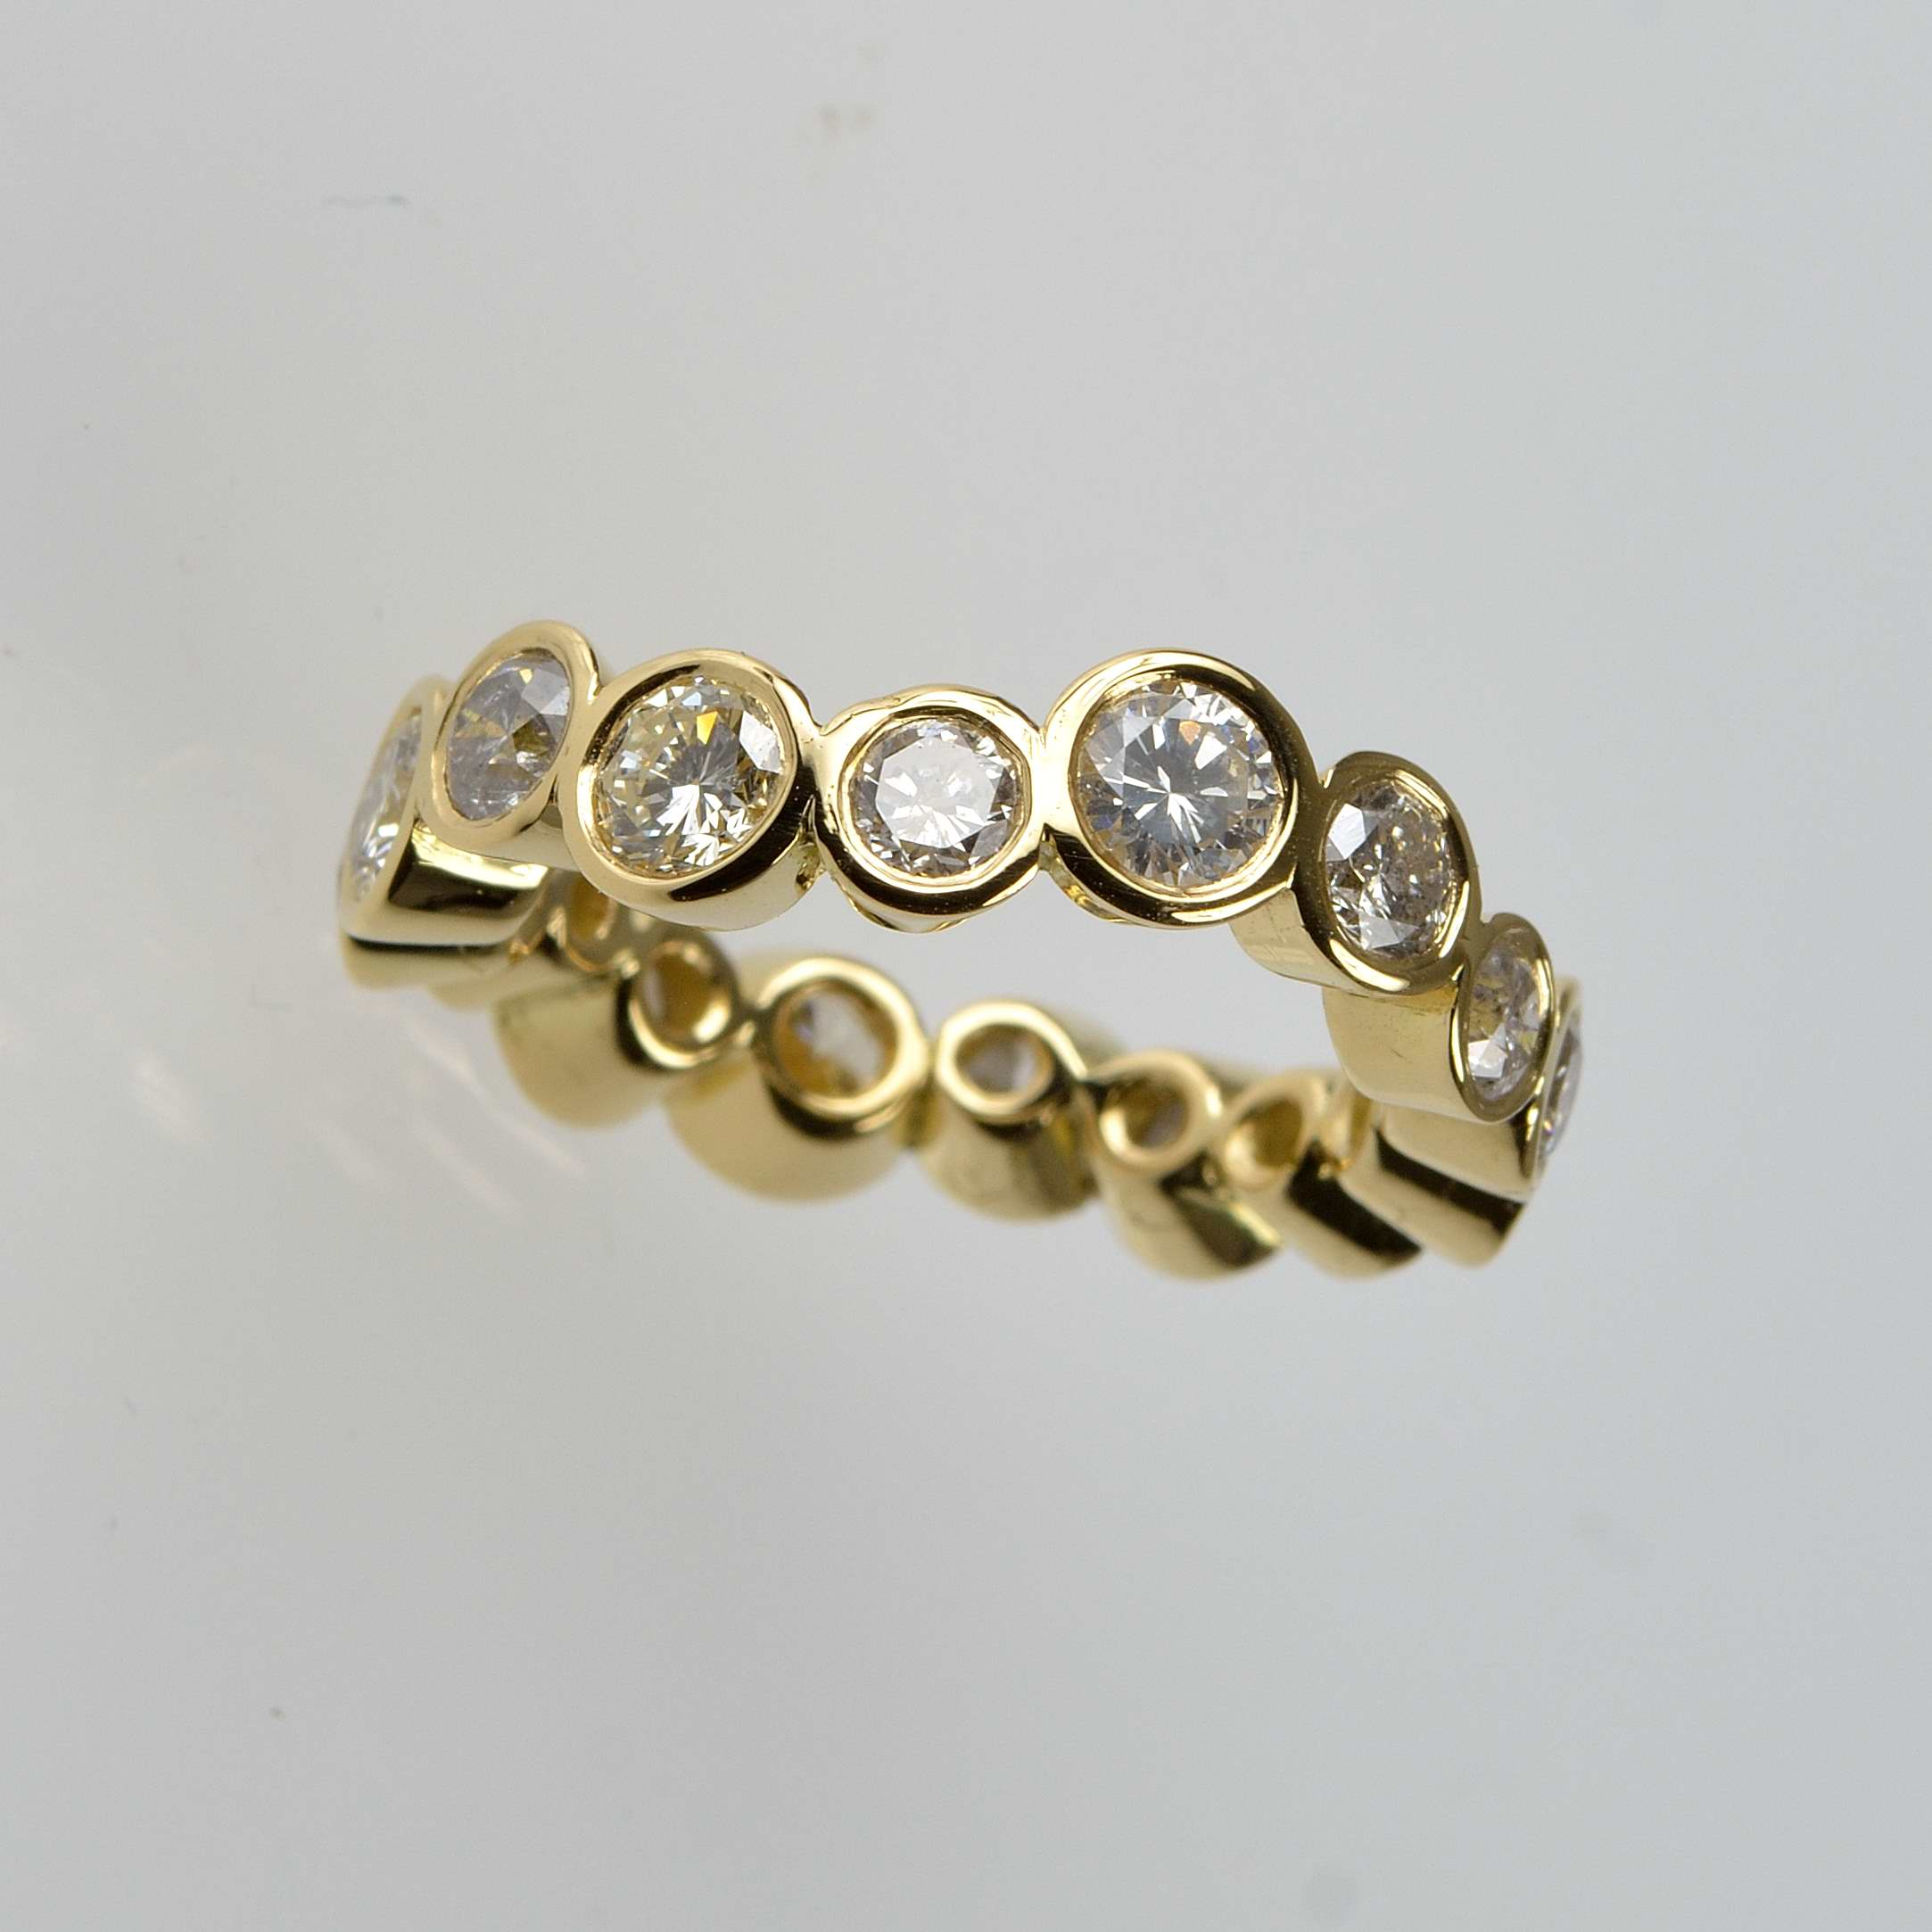 18ct gold ring with diamonds